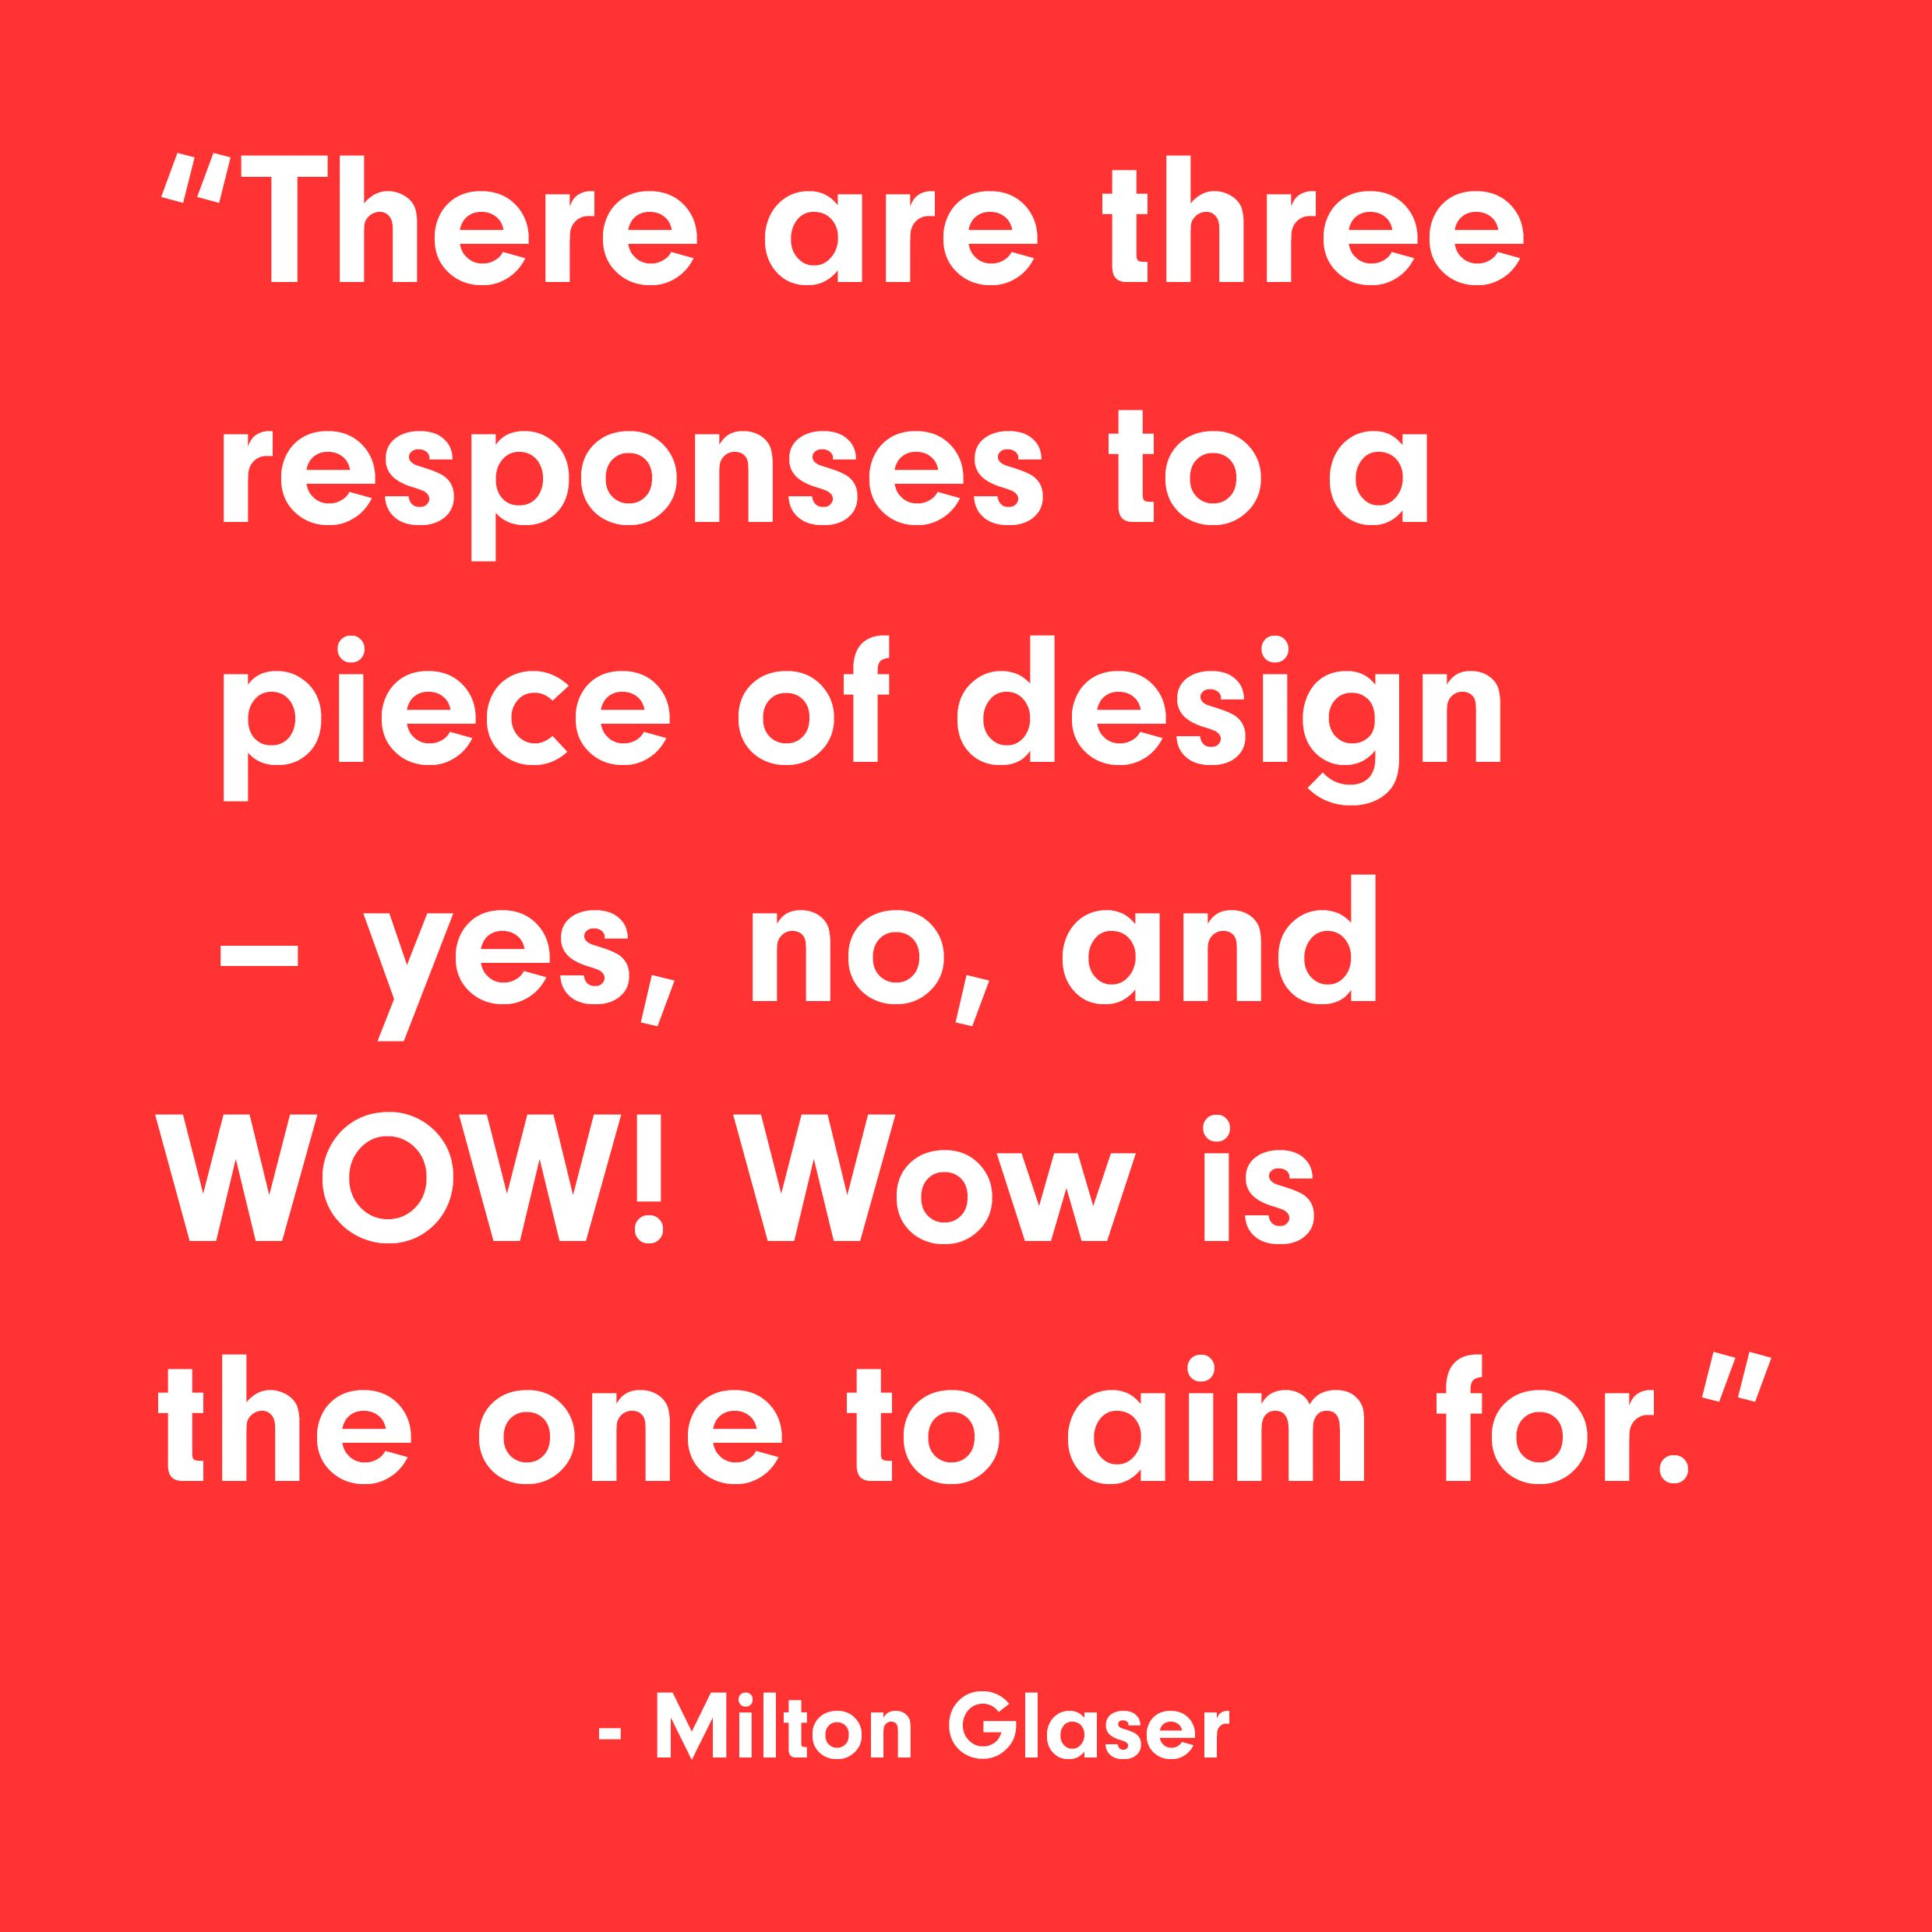 There are three responses to a piece of design - yes, no, and WOW! Wow is the one to aim for.  - Milton Glaser  #designinspiration #motivationalquote #quote #motivation #graphicdesign #brandingagency